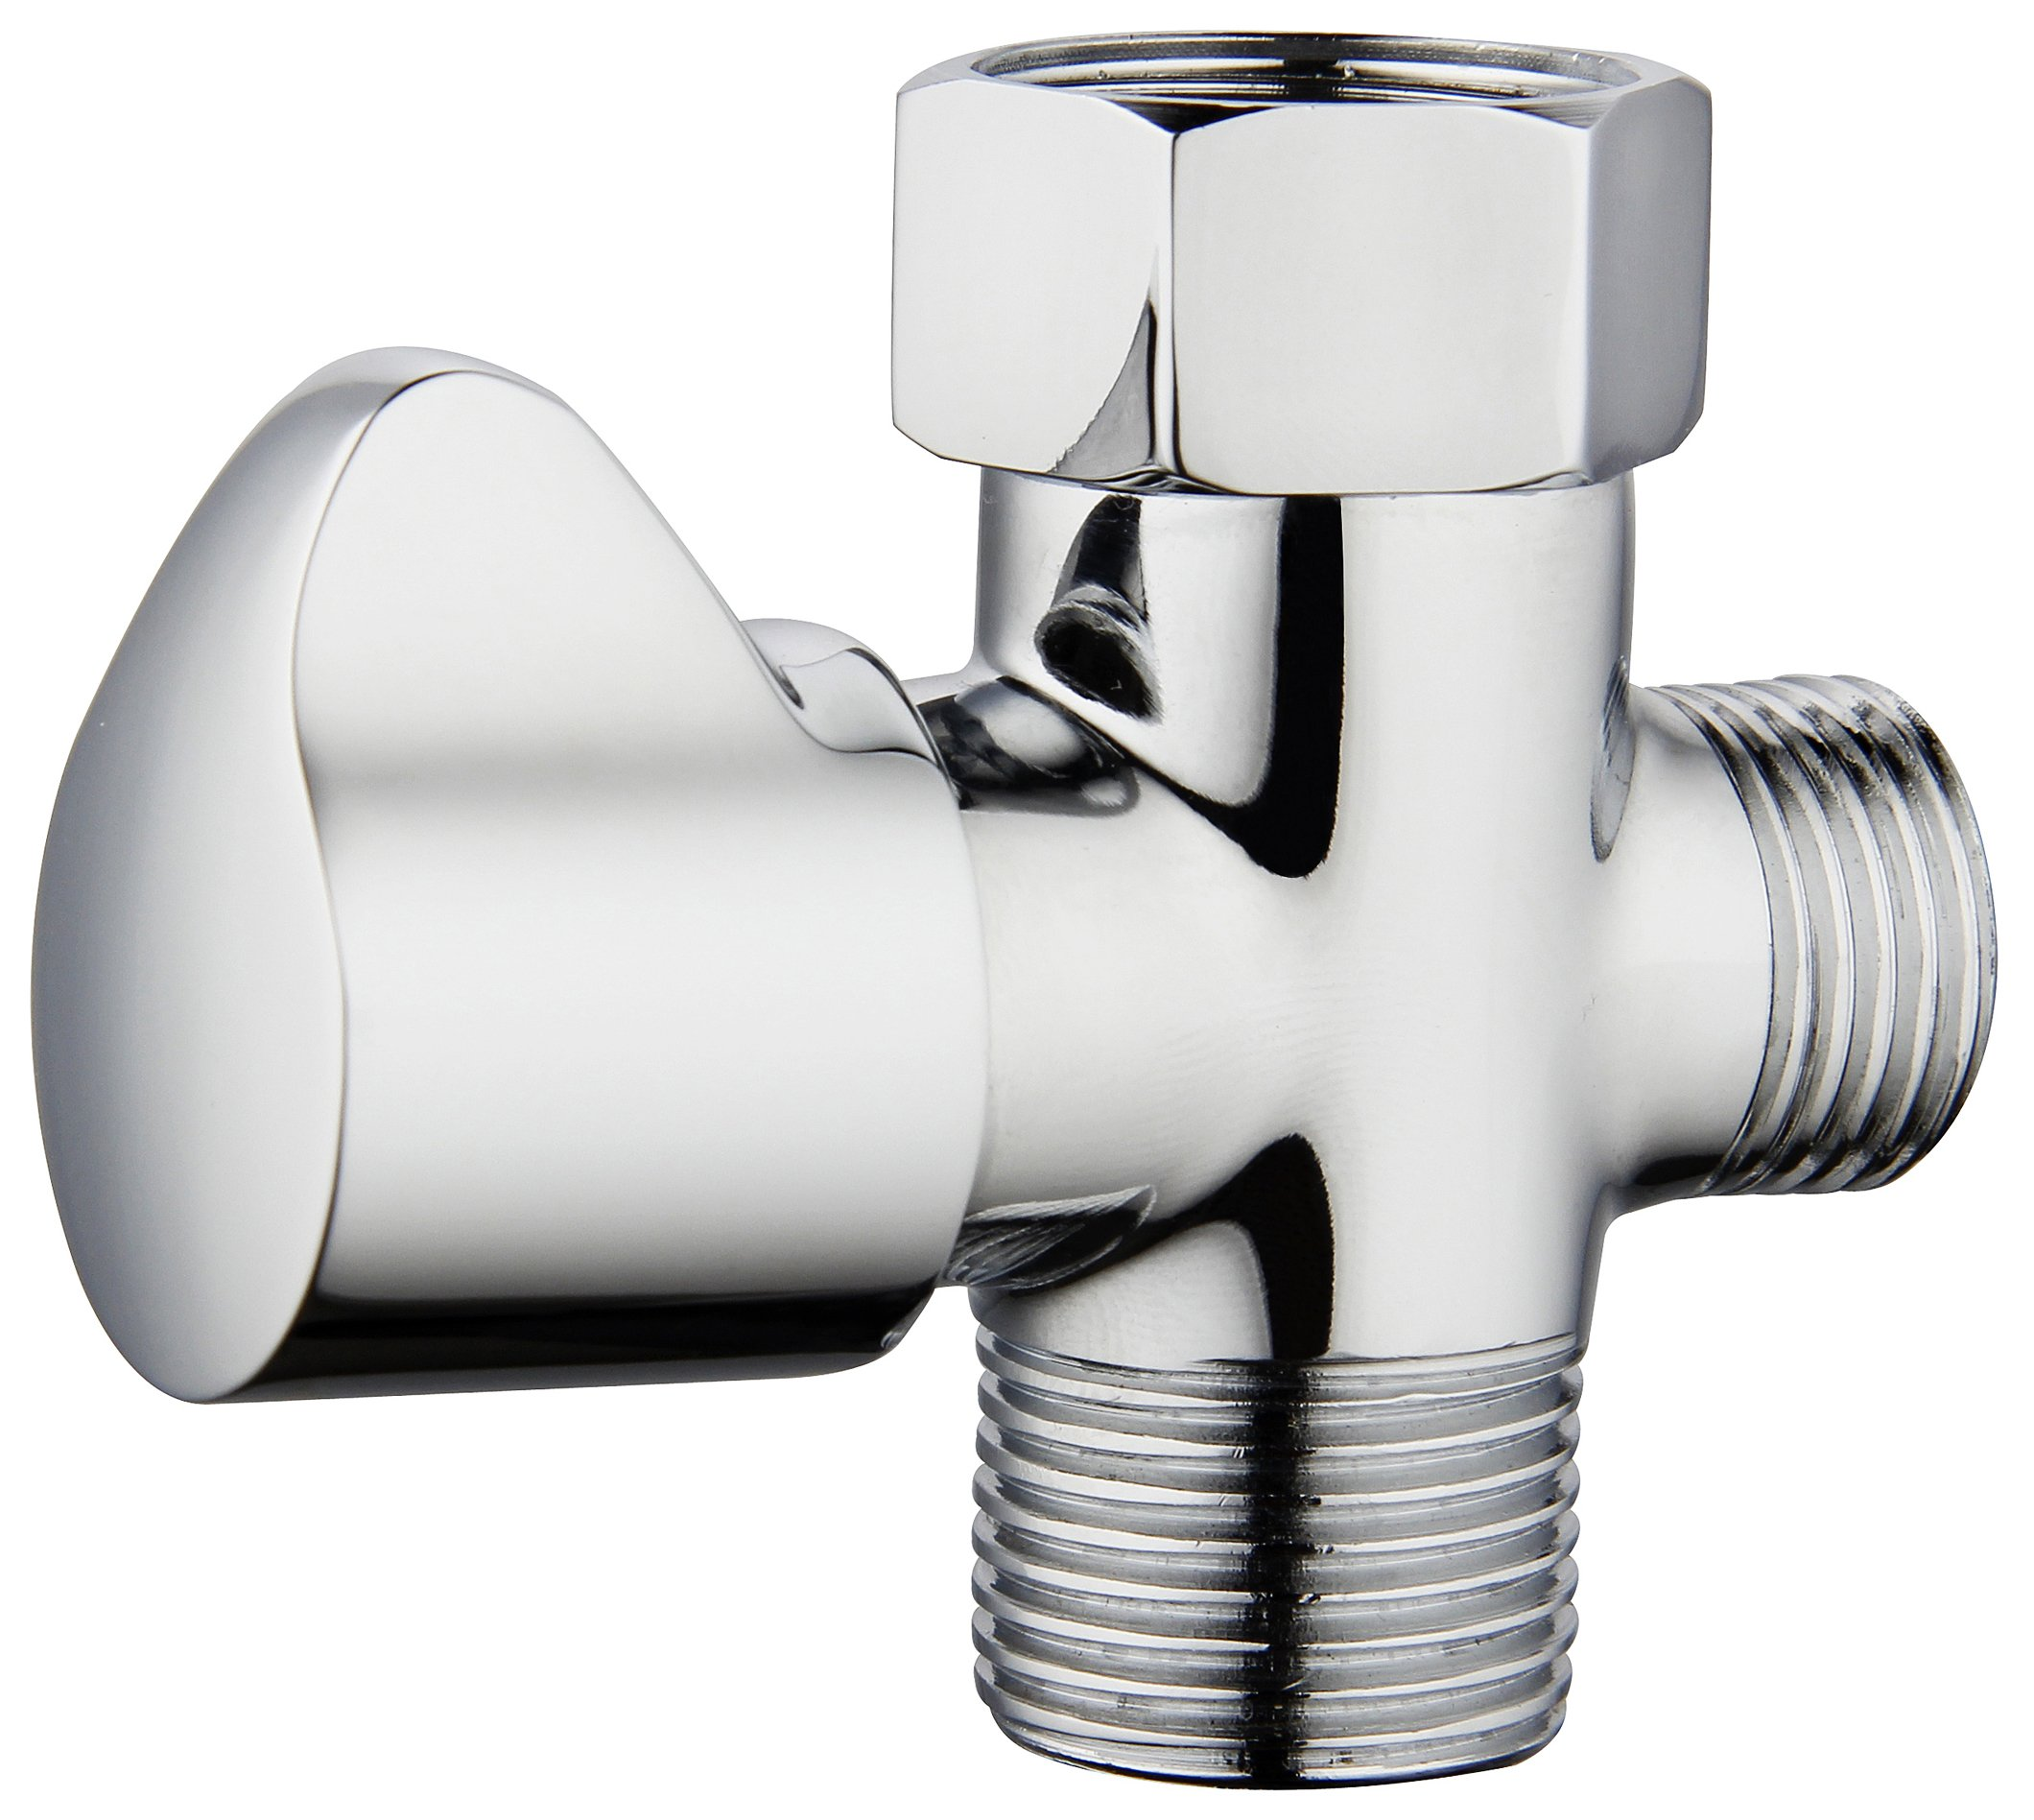 Derengge HP-013-CP Brass T-adapter with Shut-off Valve for Bidet, Chrome